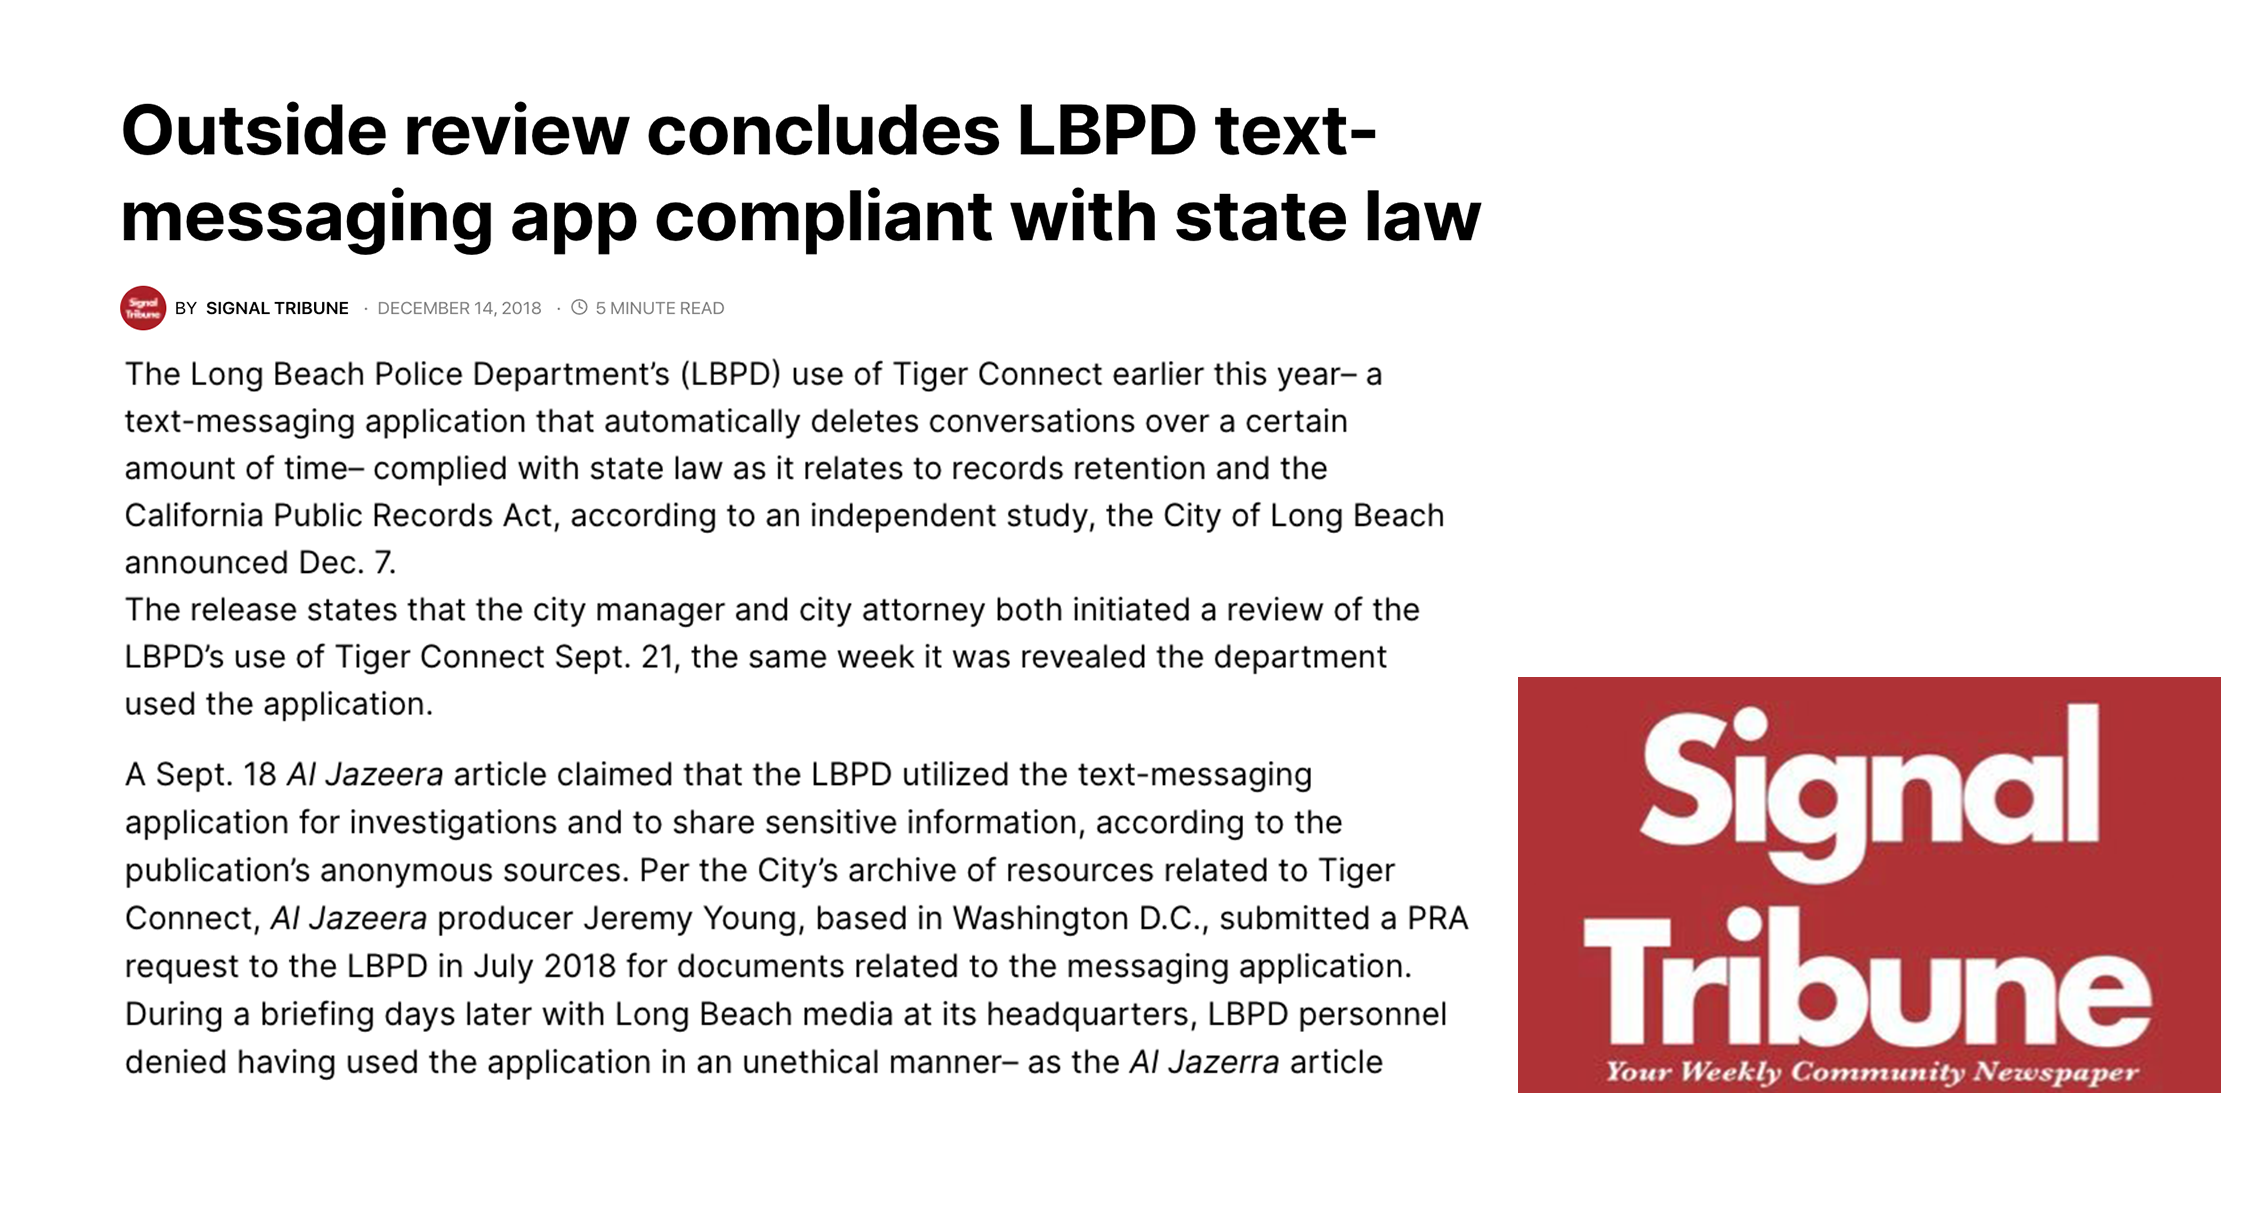 Outside review concludes LBPD text-messaging app compliant with state law